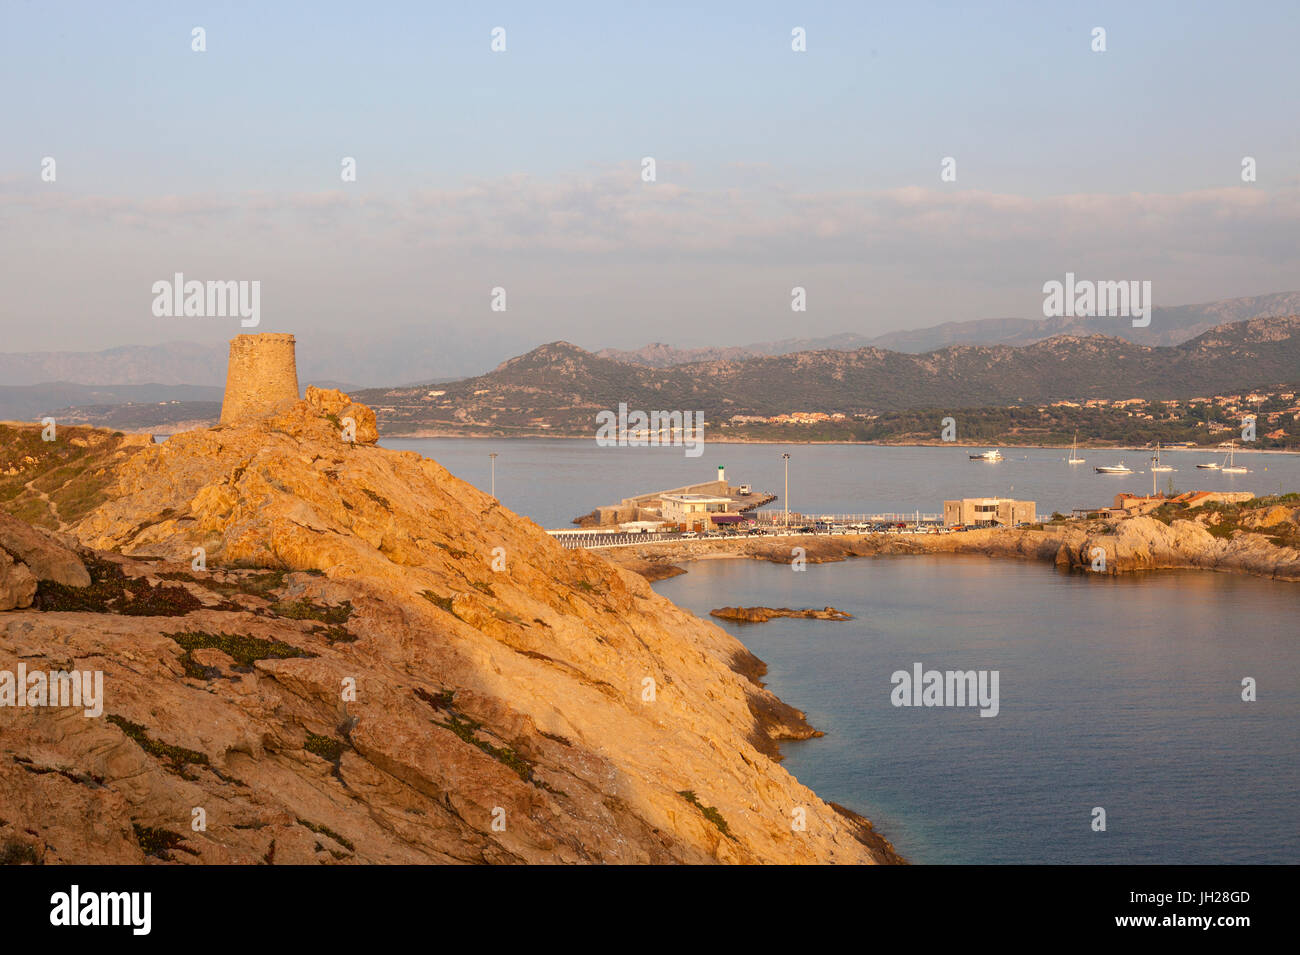 The ancient Genoese tower overlooking the blue sea surrounding the village of Ile Rousse, Balagne Region, Corsica, - Stock Image